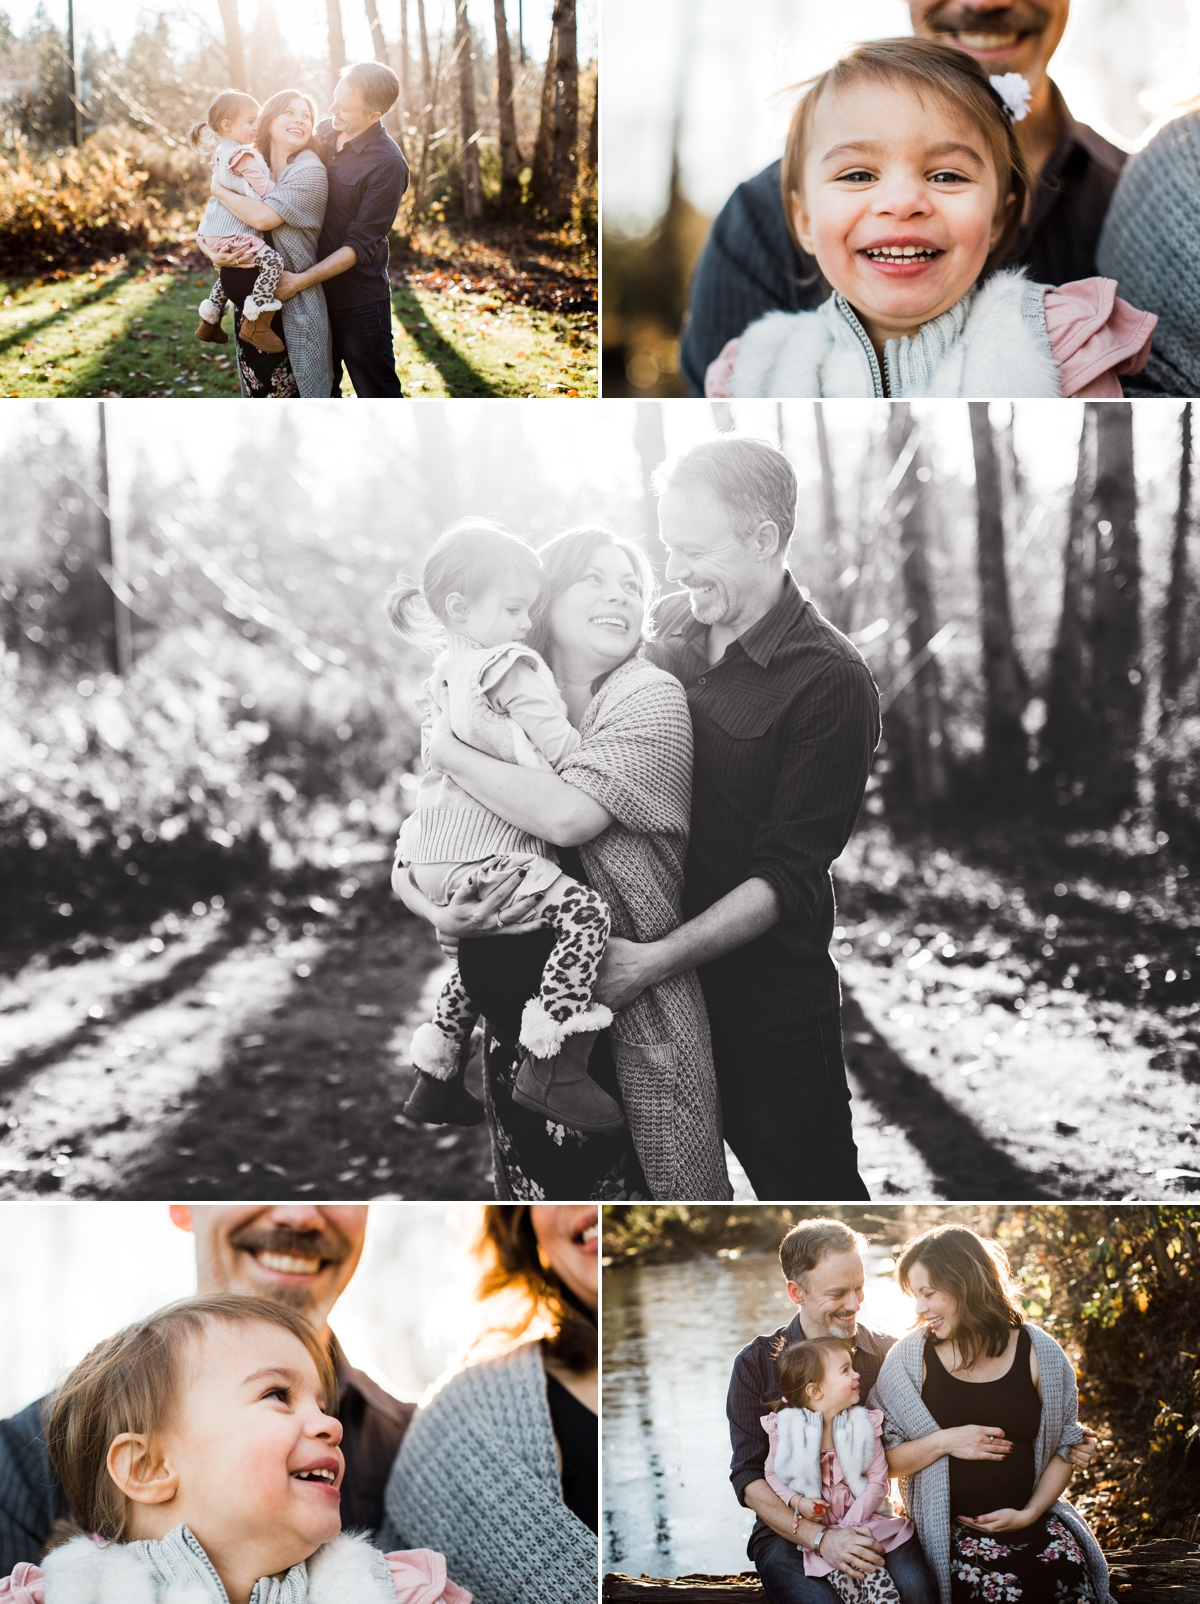 elena s blair seattle maternity photographer | emotive and connected outdoors family lifestyle photography